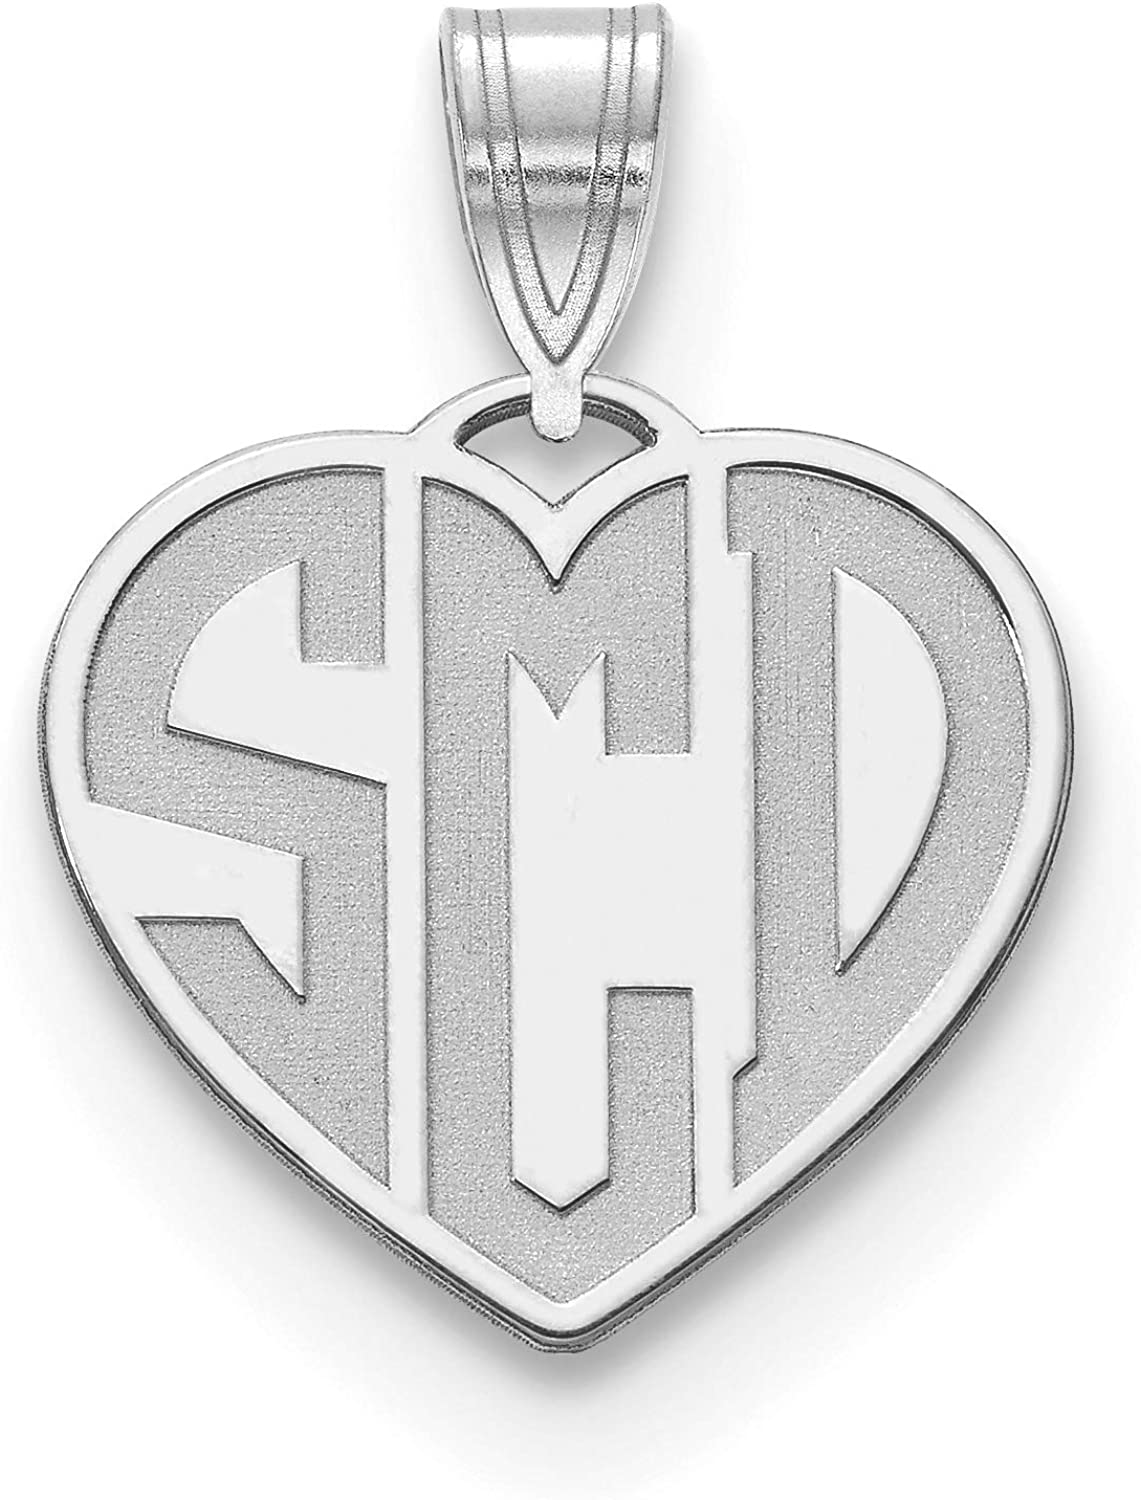 Brilliant specialty shop Bijou Etched Heart Monogram Pendant - Personalized Med Max 43% OFF